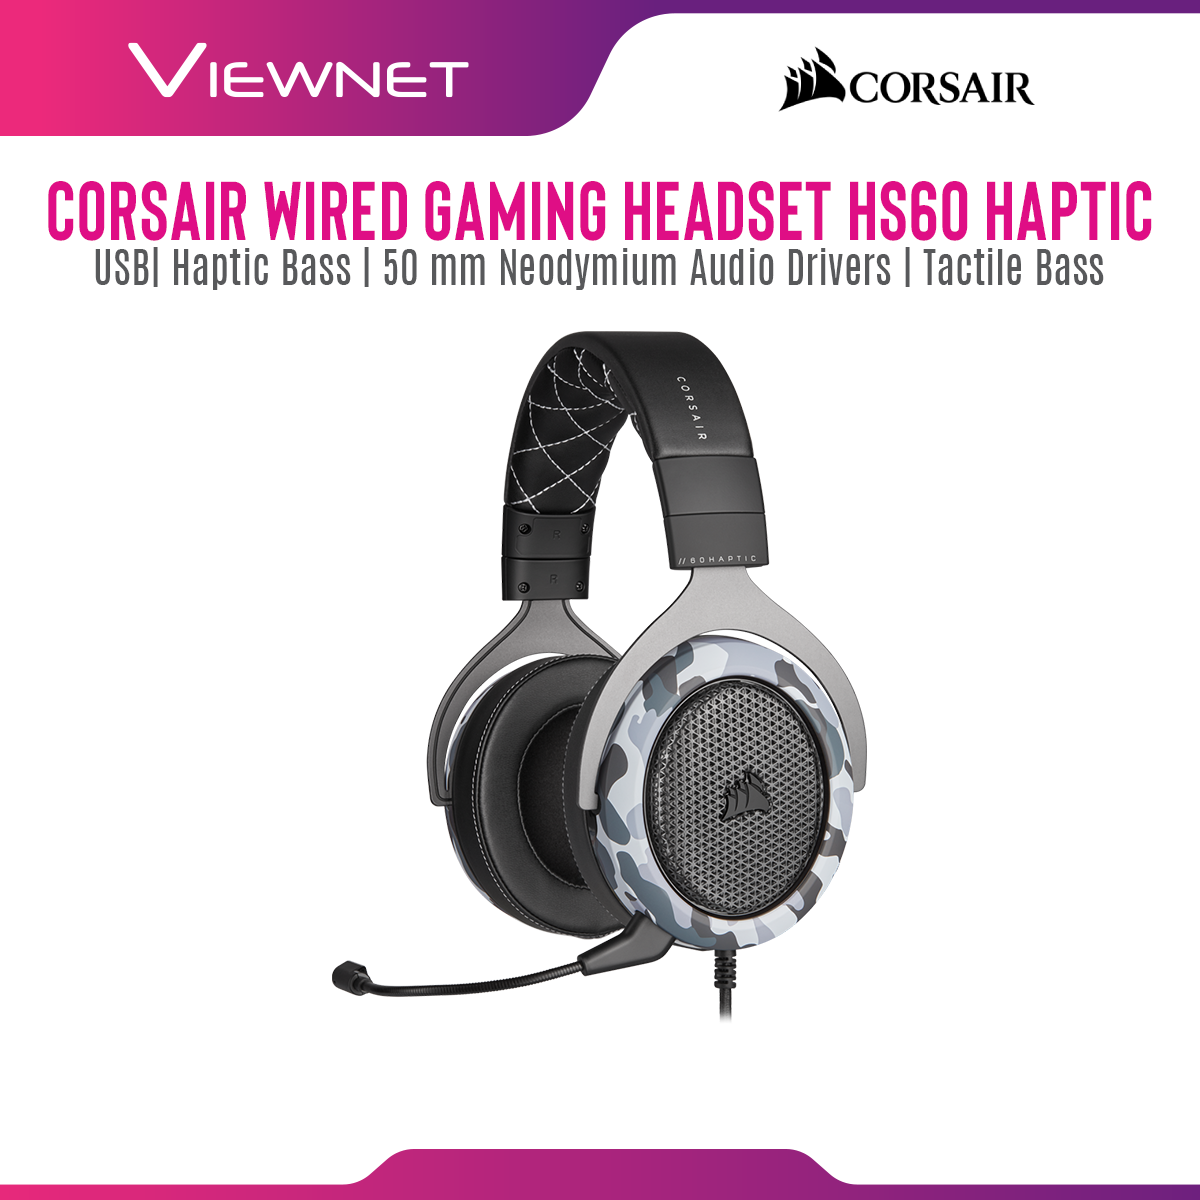 Corsair HS60 Haptic Wired Gaming Headset with USB, Haptic Bass, 50 MM Neodymium Audio Driver, Tactile Bass, Crafted For Comfort,